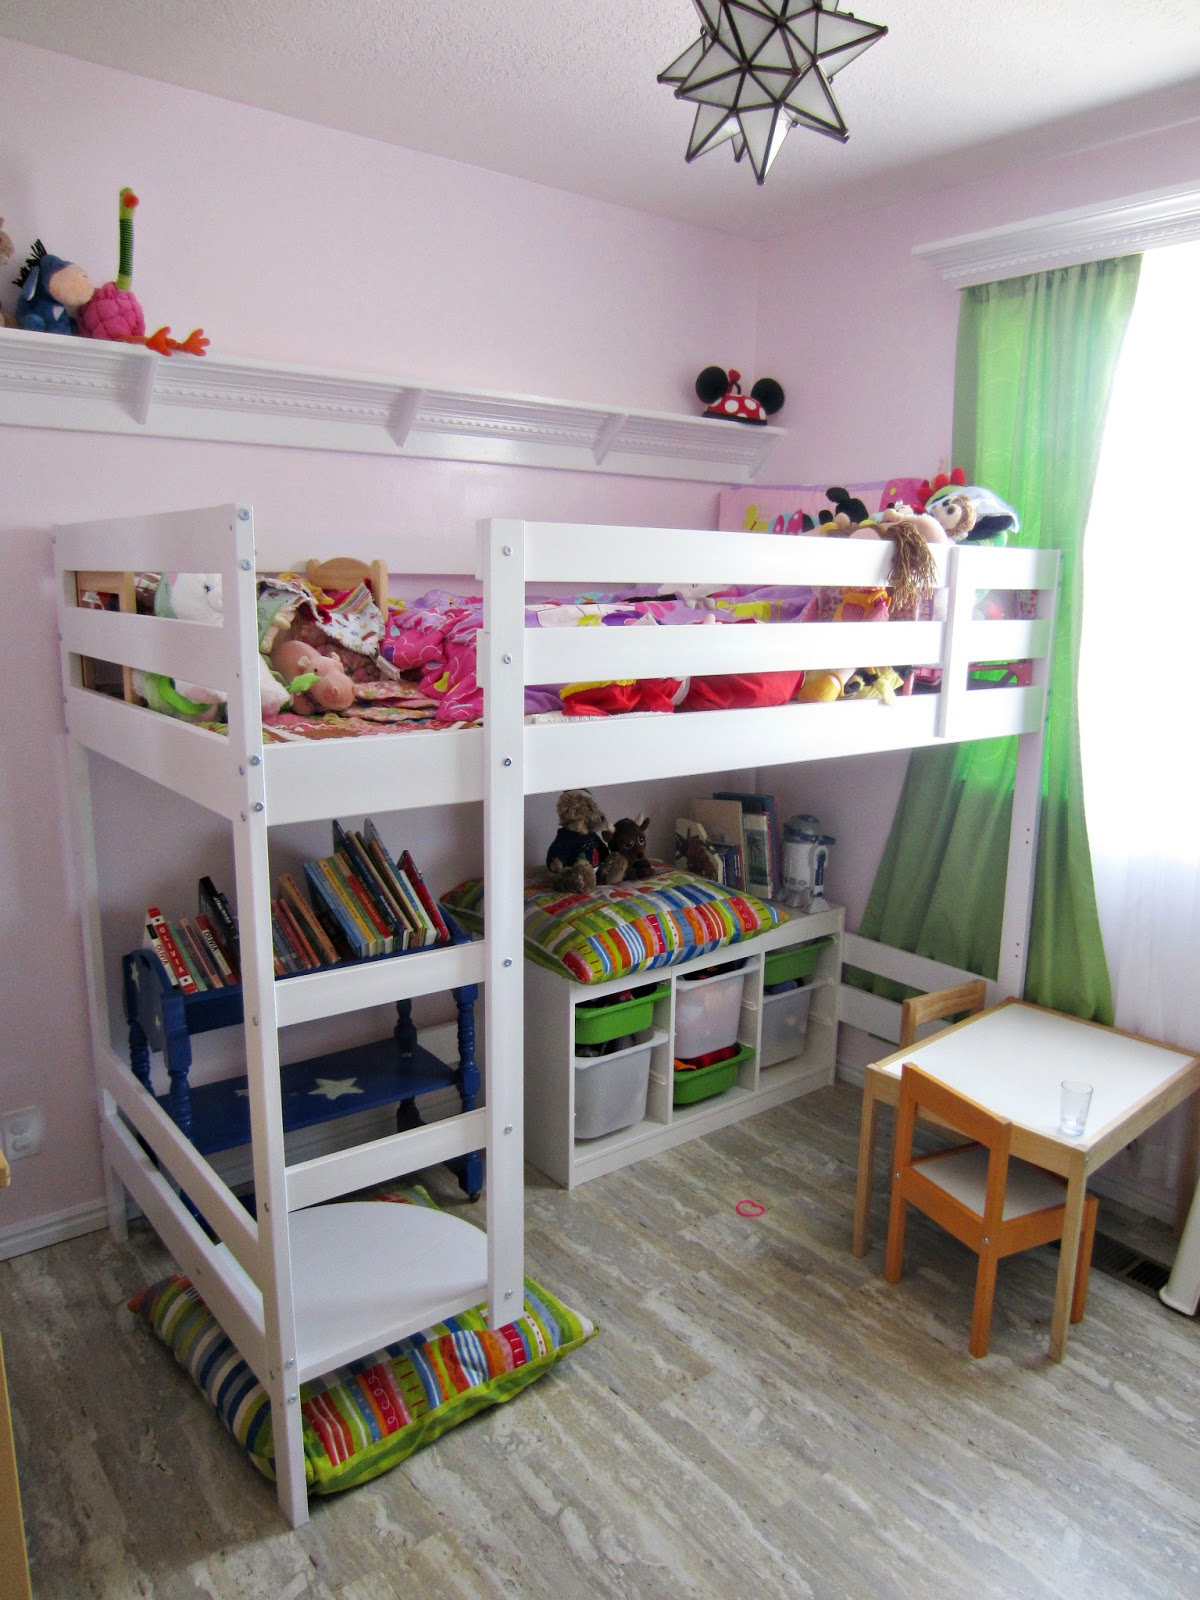 Bunk bed with desk underneath ikea -  Desk Underneath Ikea Storage Ideas To Keep Your Childs Toys From Taking Over Your Home Bunk Beds With